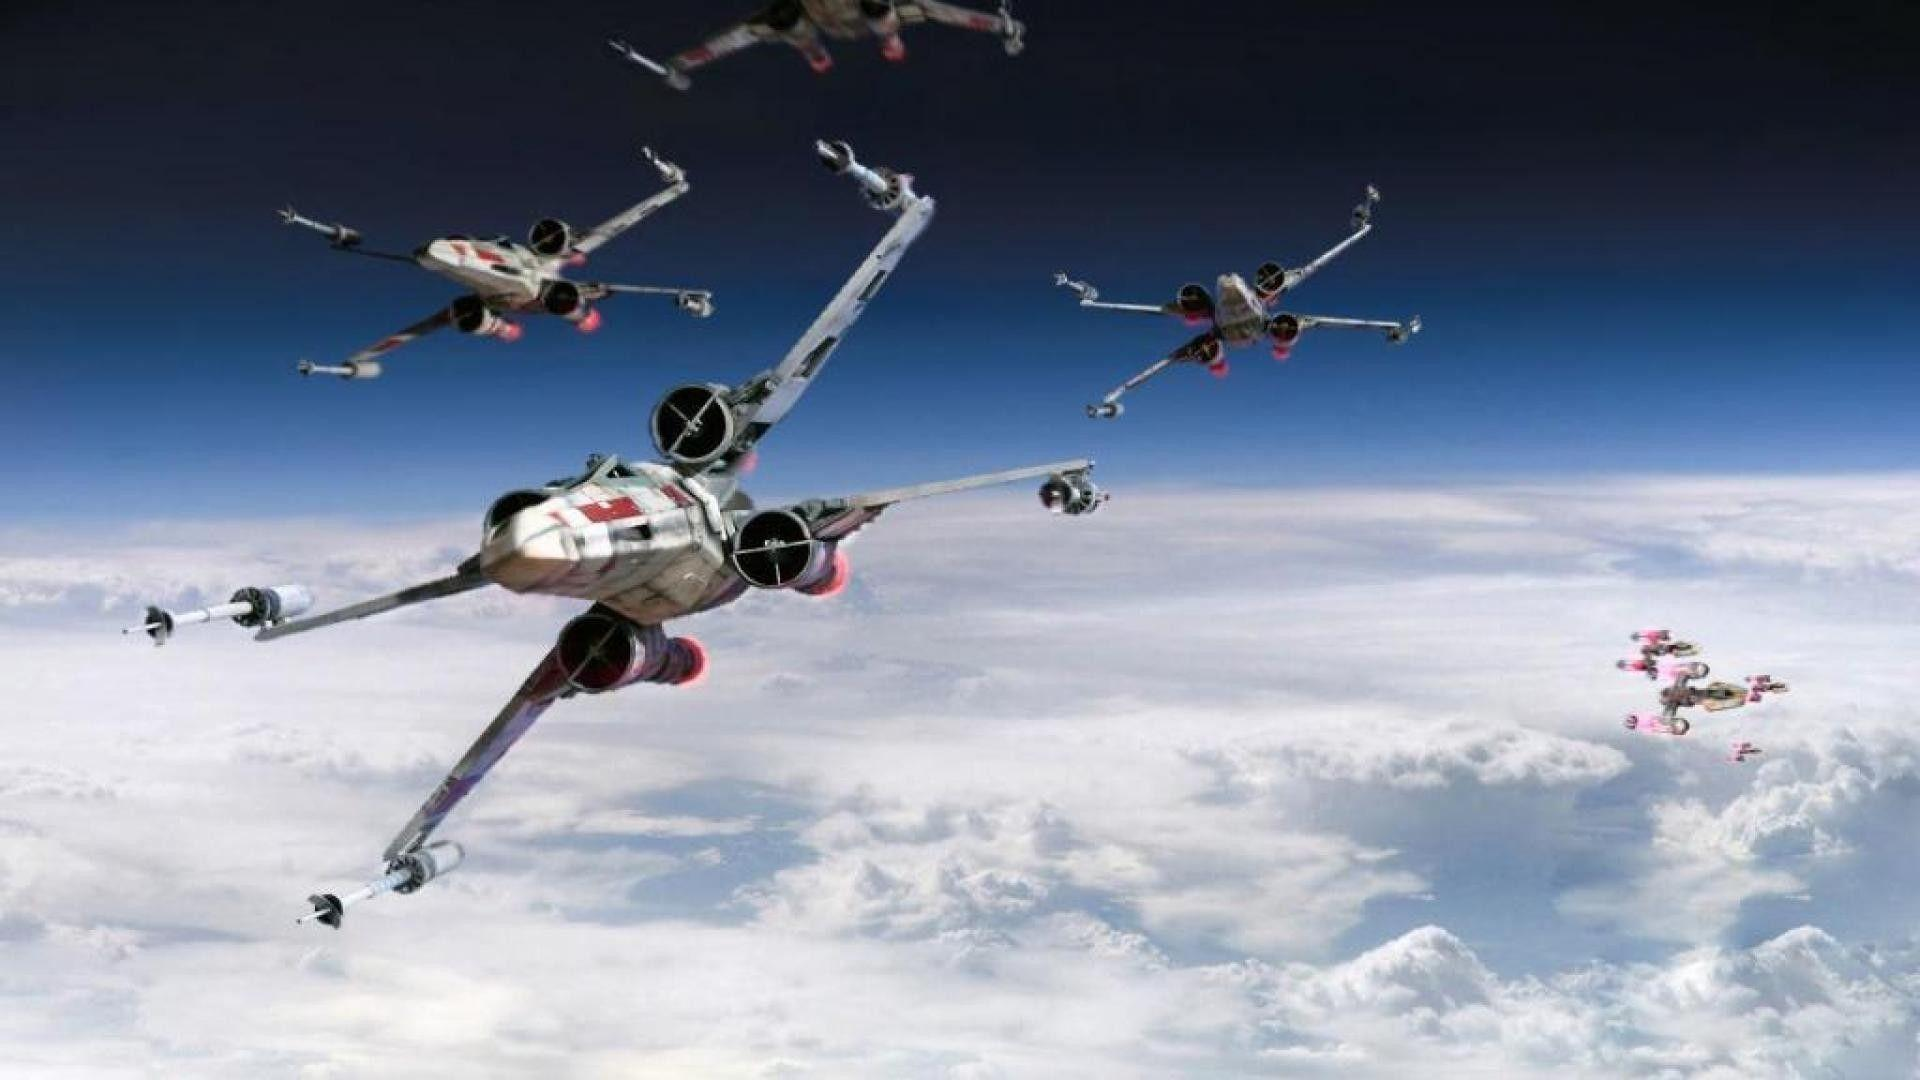 X Wing Starfighter Wallpapers Wallpaper Cave